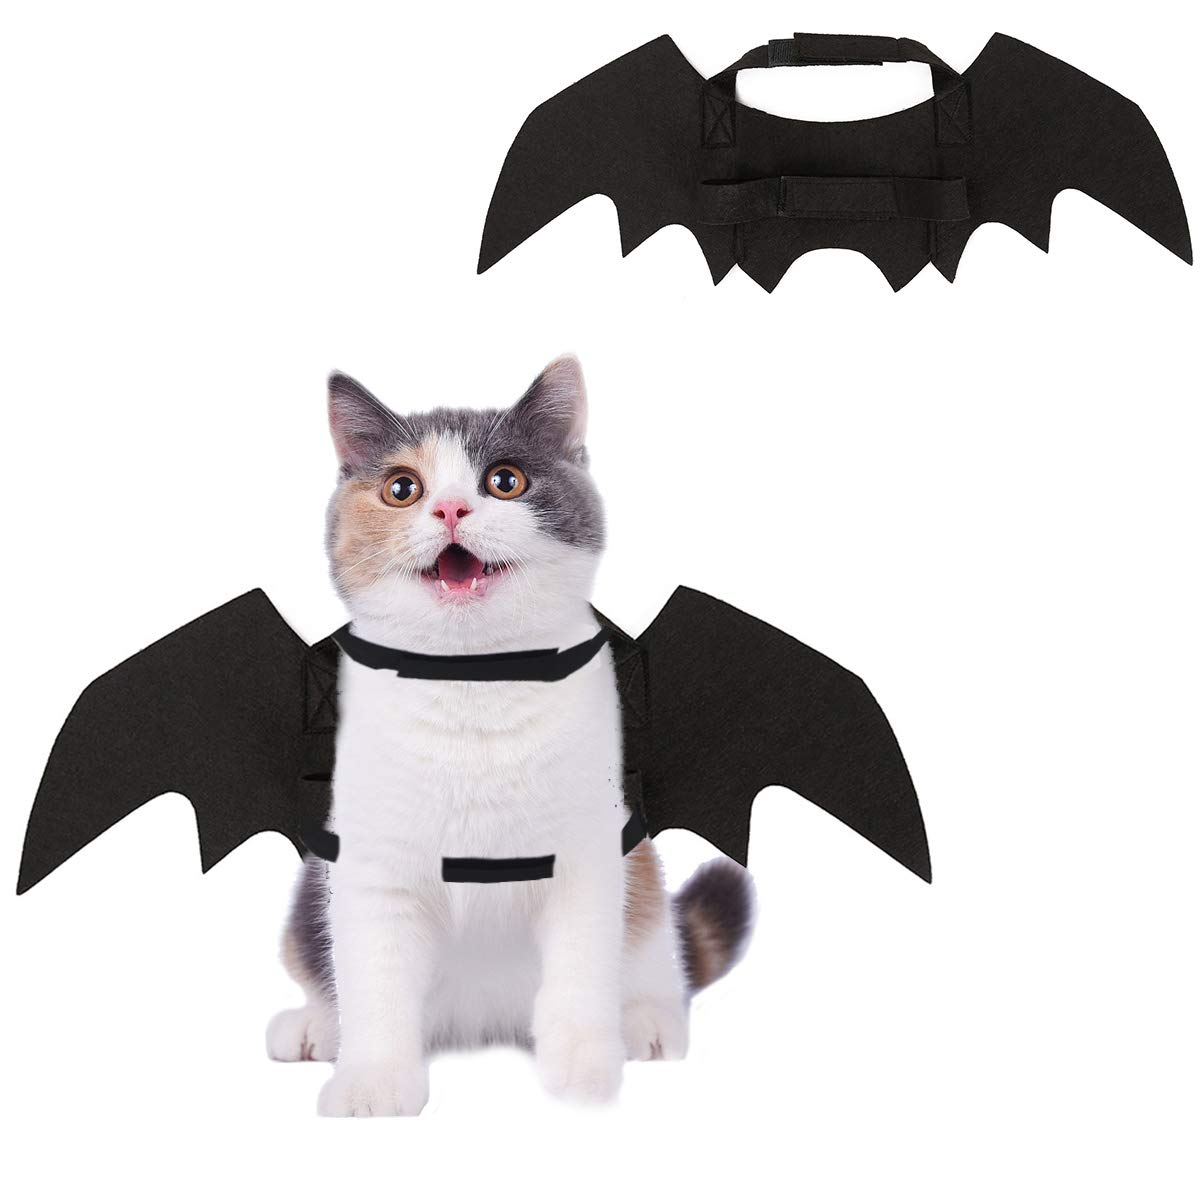 HOMIMP Halloween Pet Bat Costume for Cats and Puppies Black Wings HM0919PW